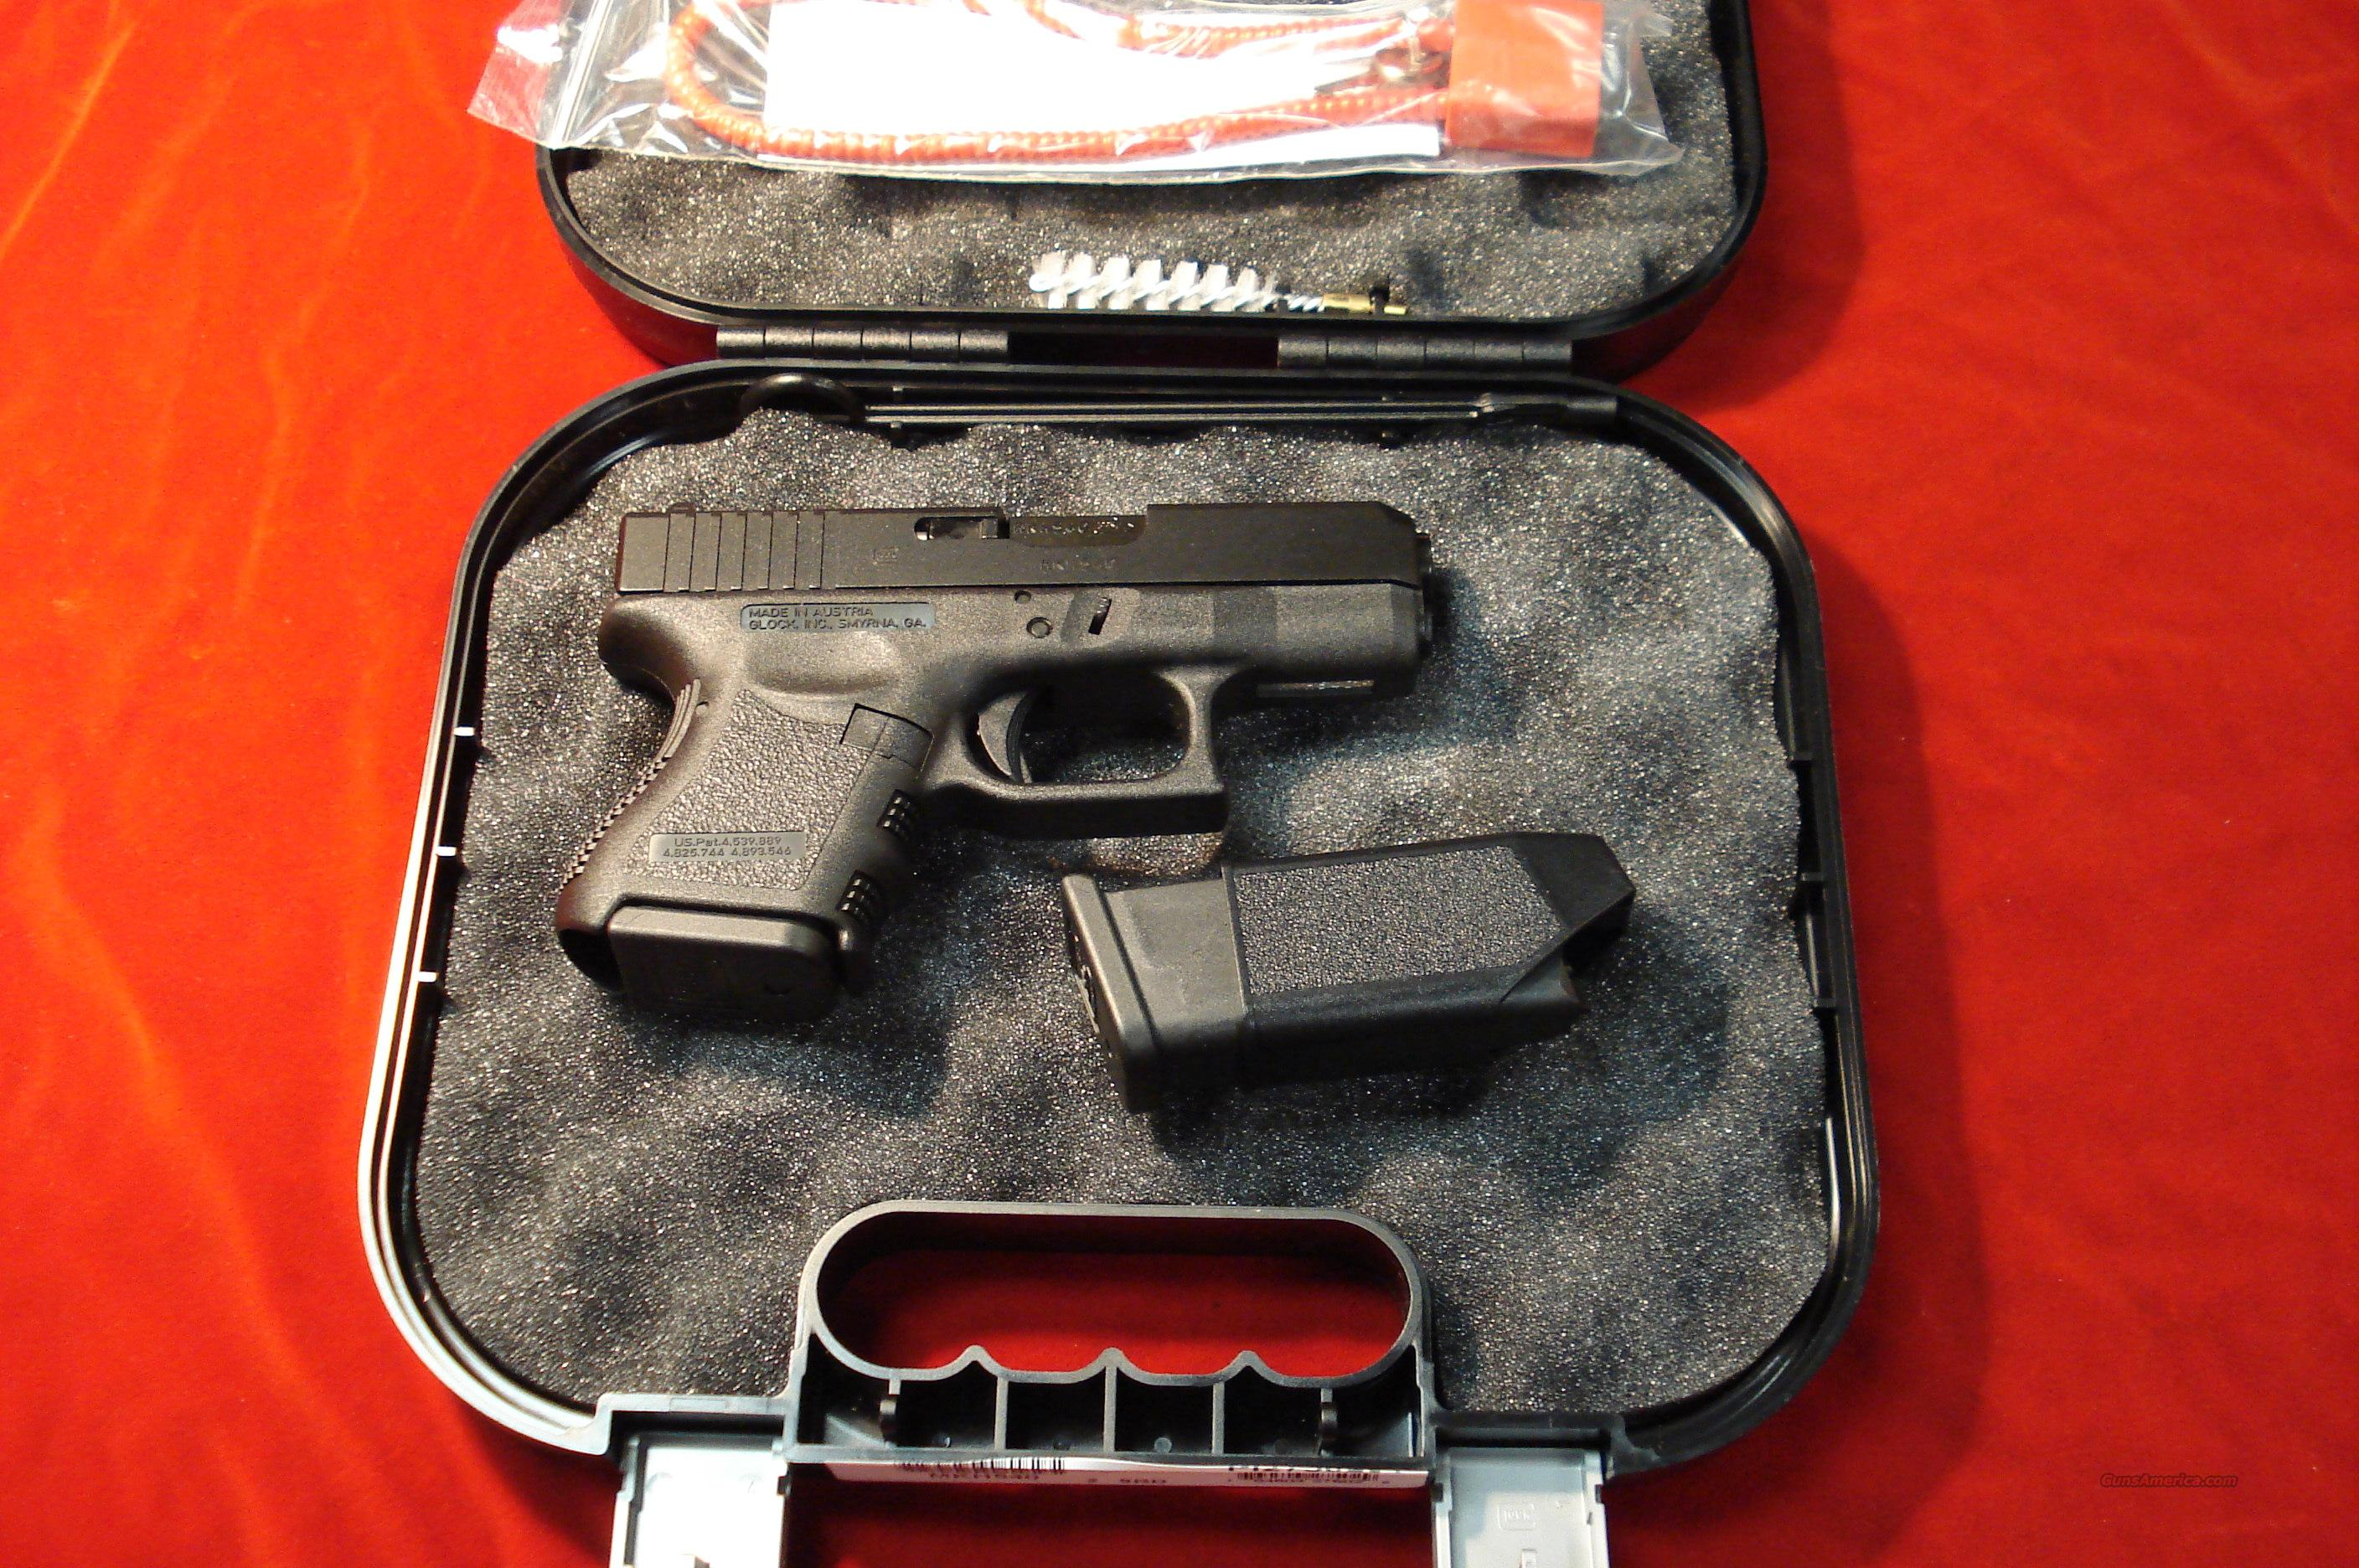 GLOCK MODEL 27 GEN3 40S&W NEW    Guns > Pistols > Glock Pistols > 26/27